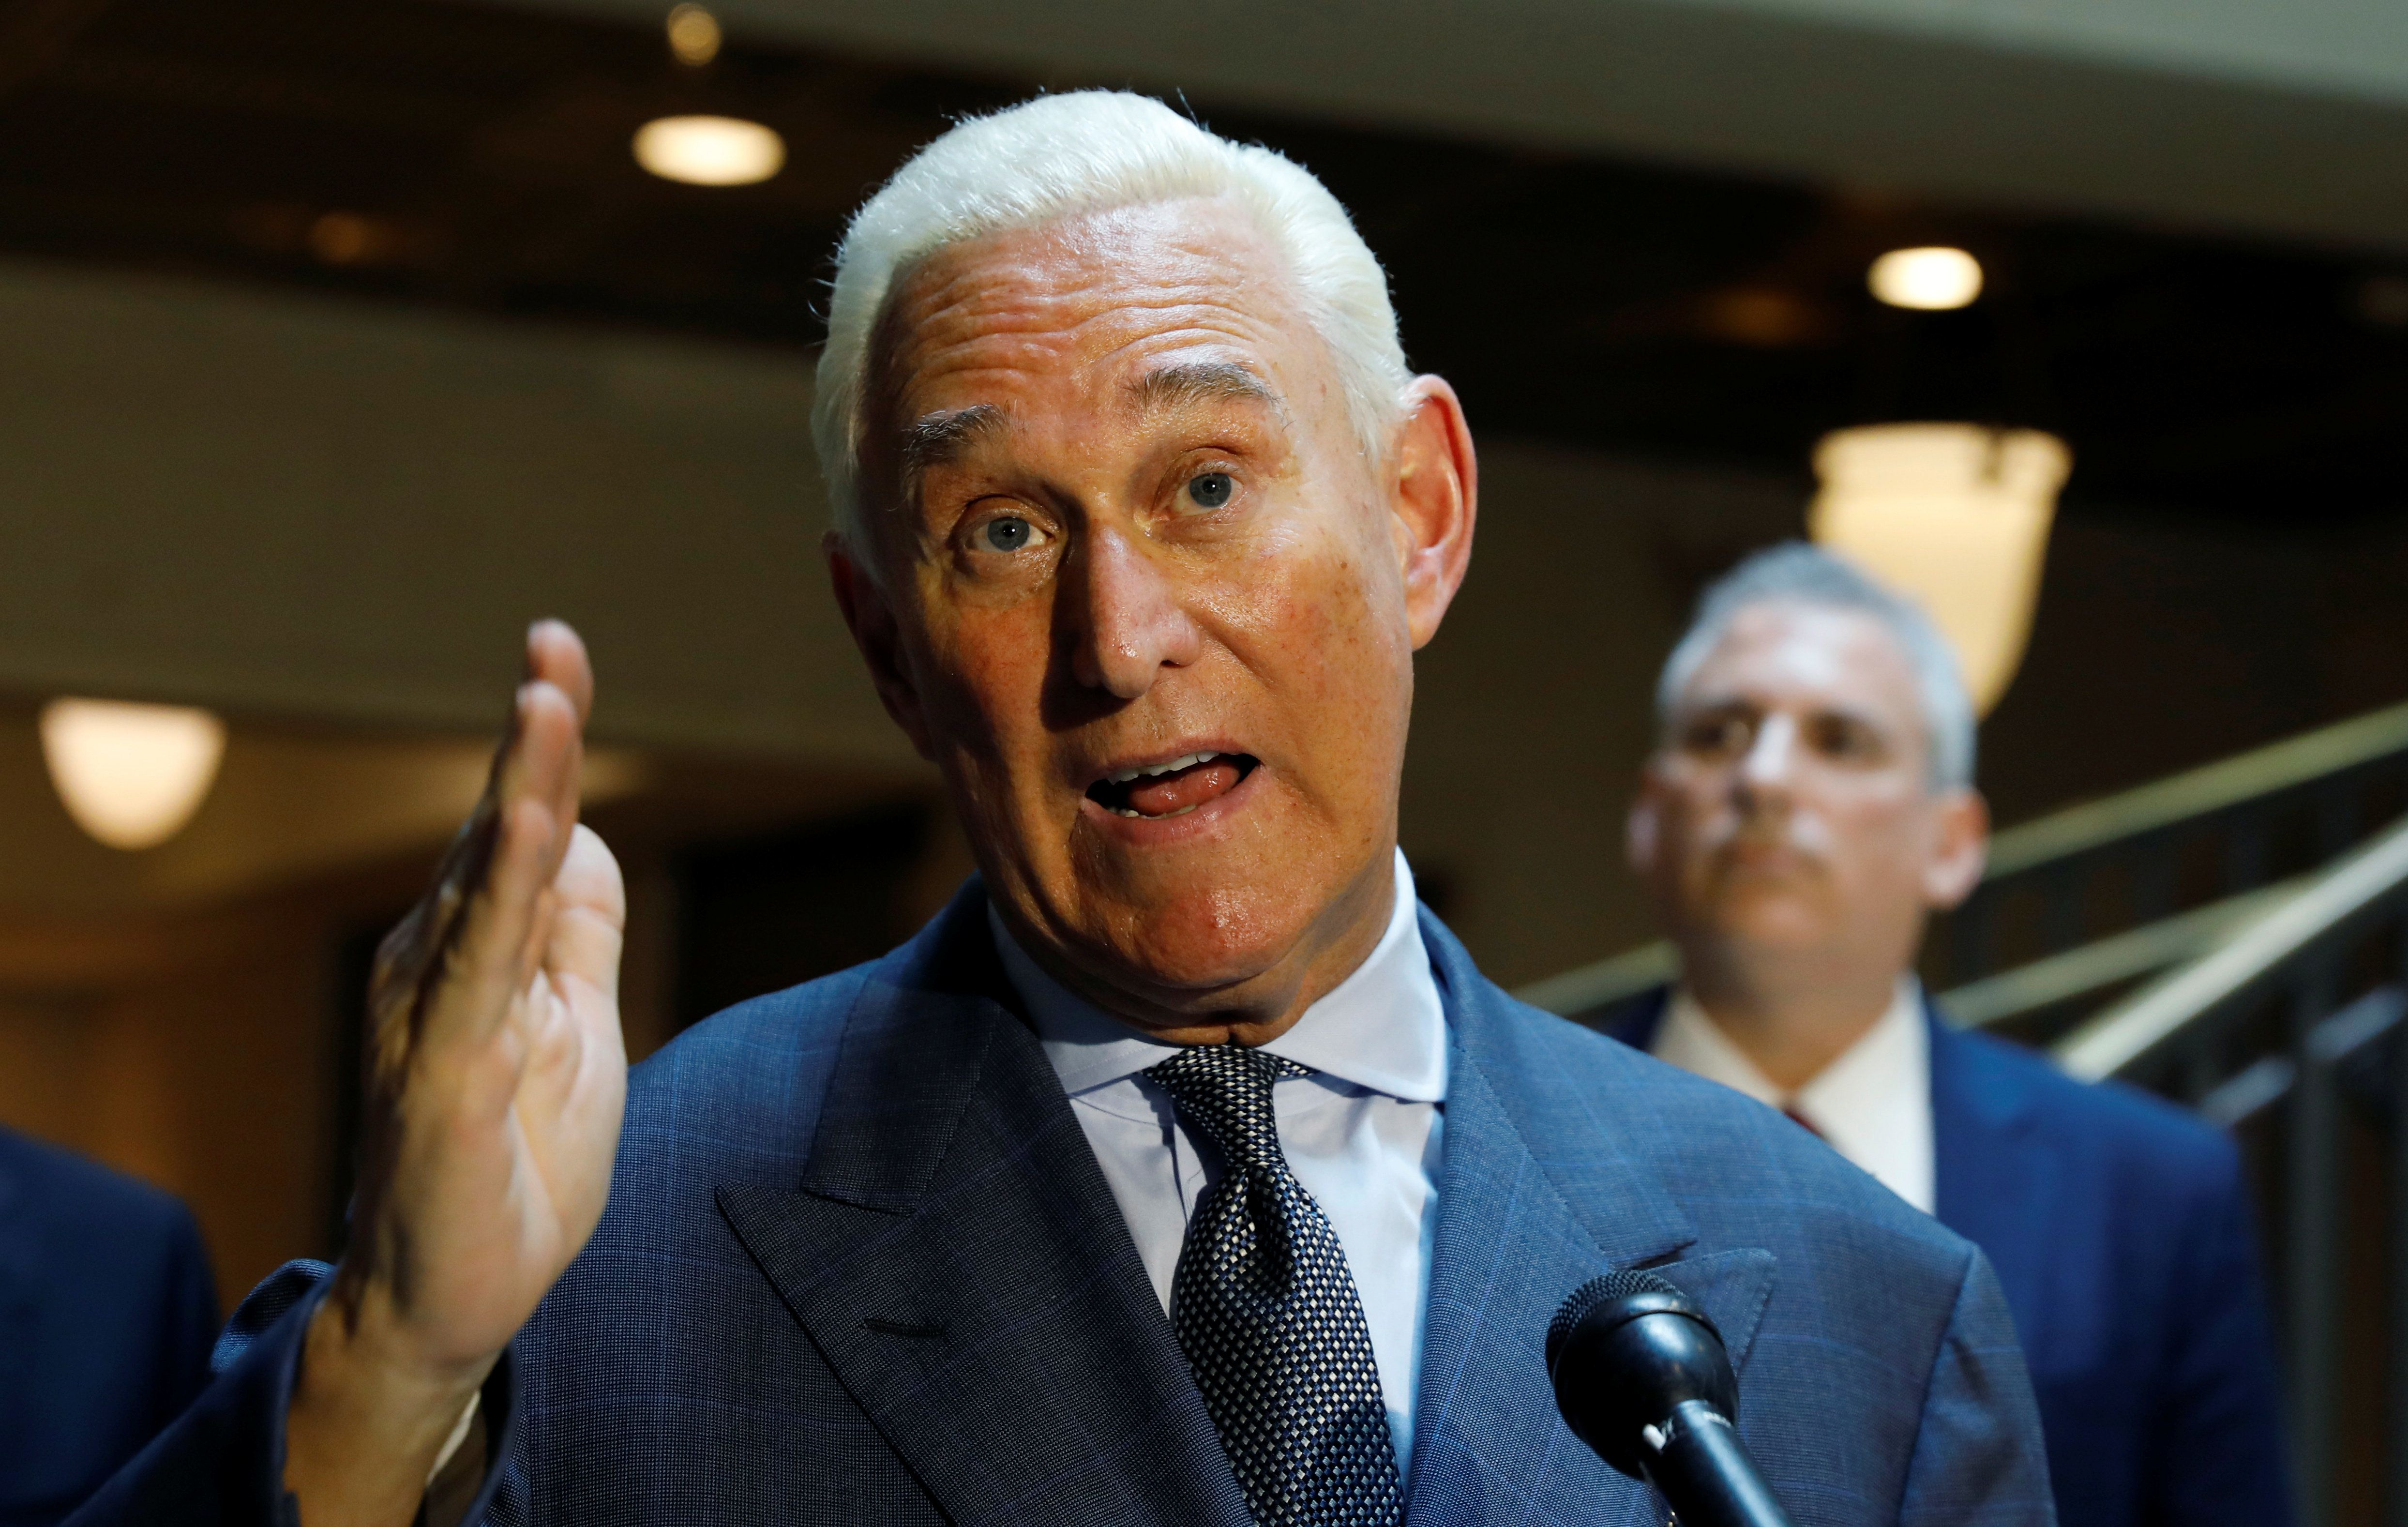 Trump Ally Roger Stone Suspended From Twitter After Vicious Attacks On CNN